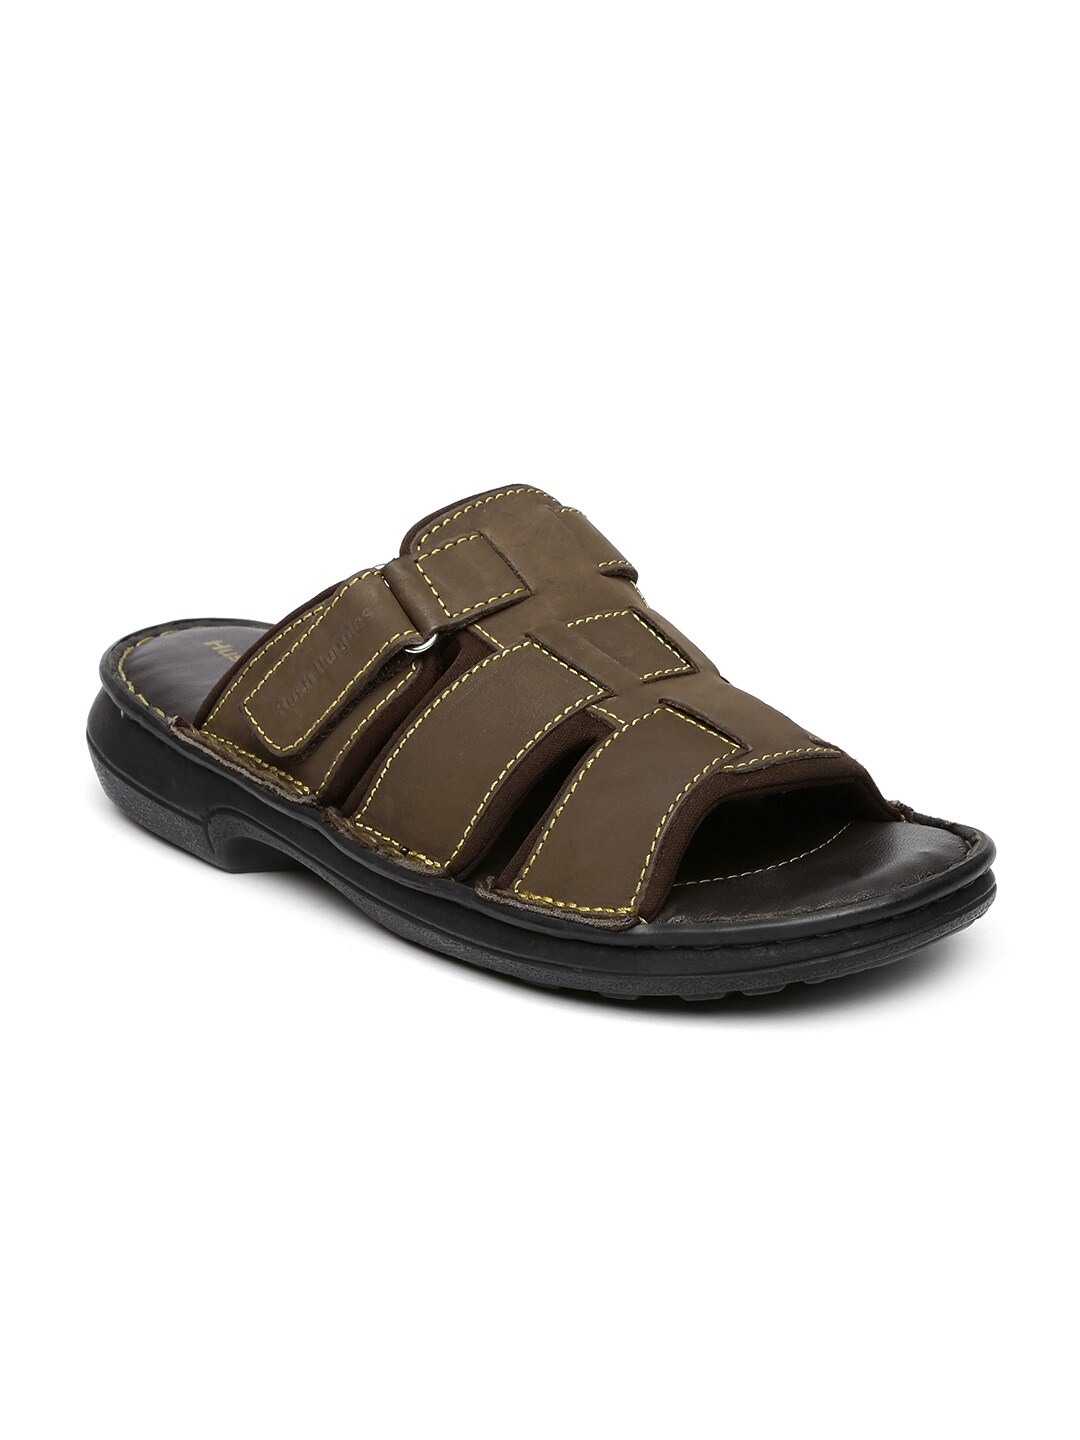 8744619 Men Hush Leather Puppies Sandals Brown Price Best In 45RALcj3q